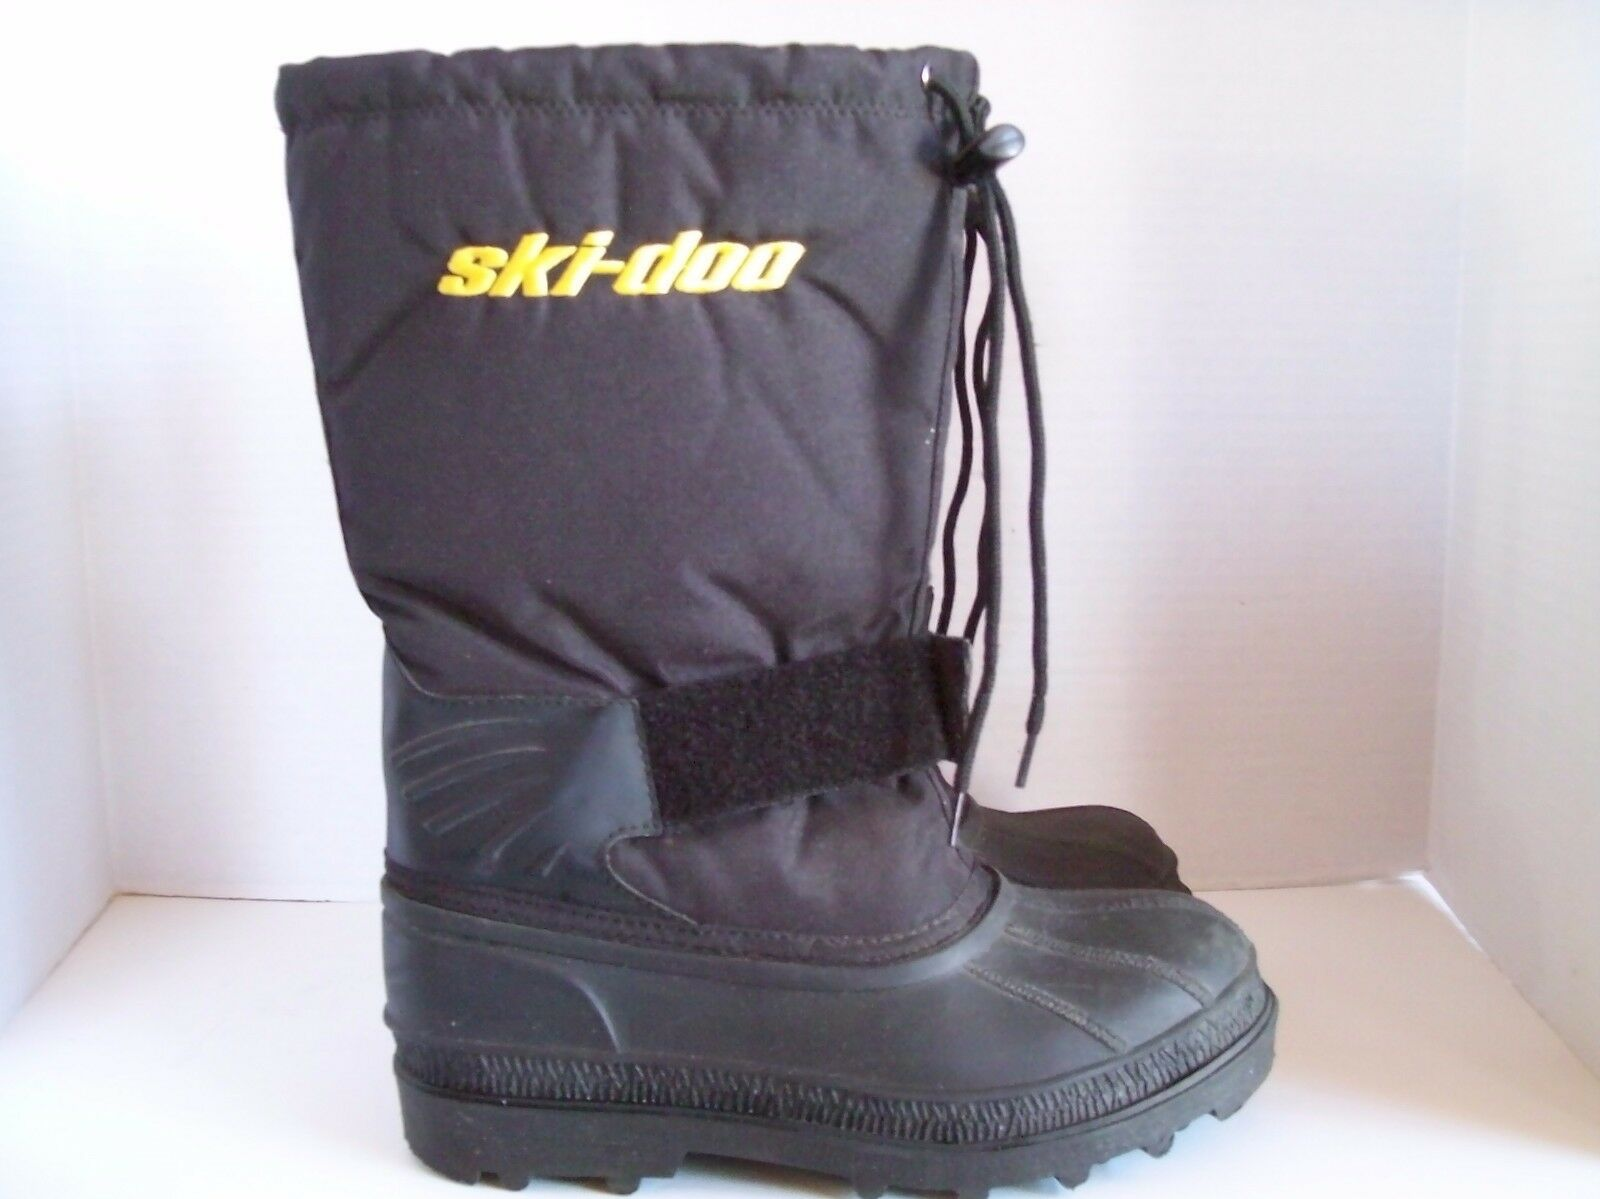 SKI-DOO SNOWMOBILE  INSULATED WOMEN'S BOOTS SIZE 5